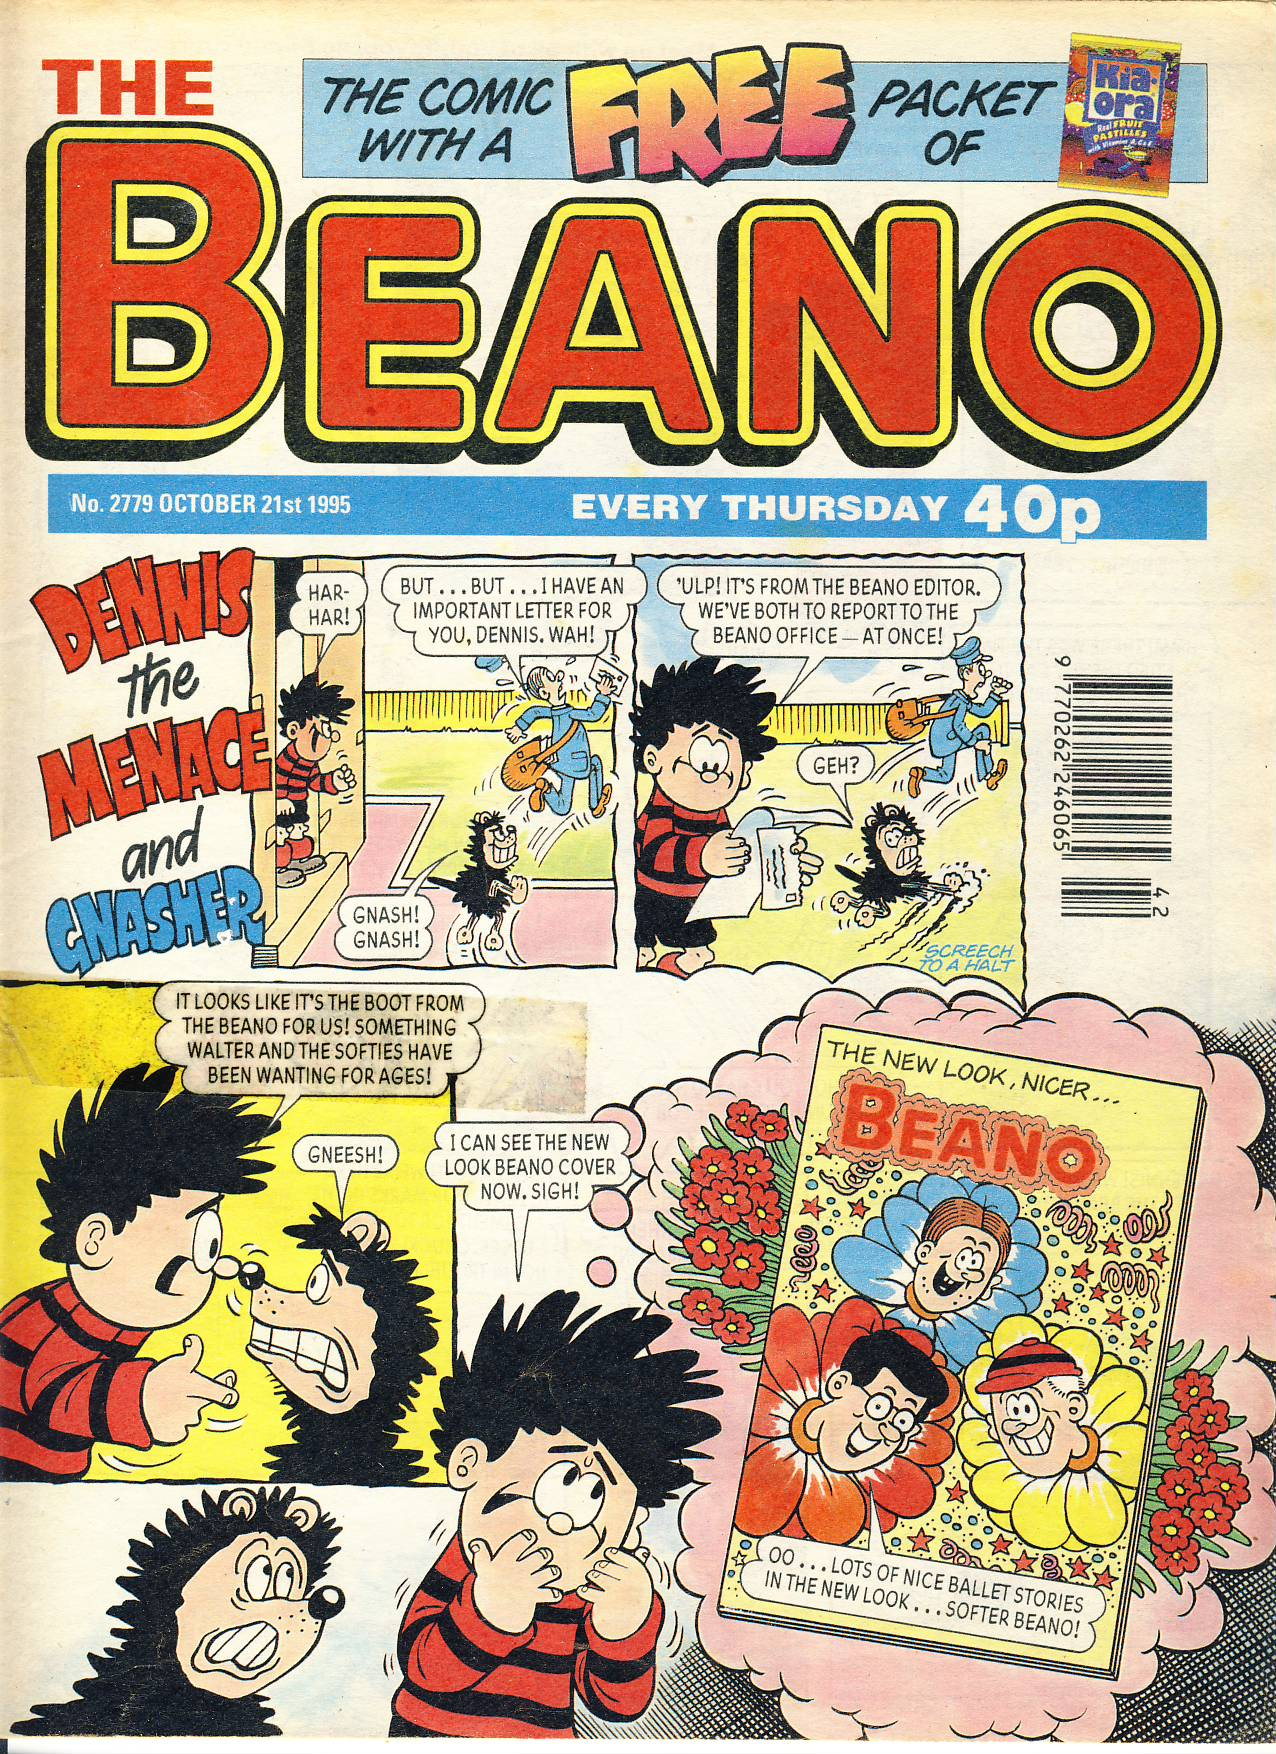 1995 October 21st BEANO vintage comic Good Gift Christmas Present Birthday Anniversary ref207 a pre-owned item in very good read condition.